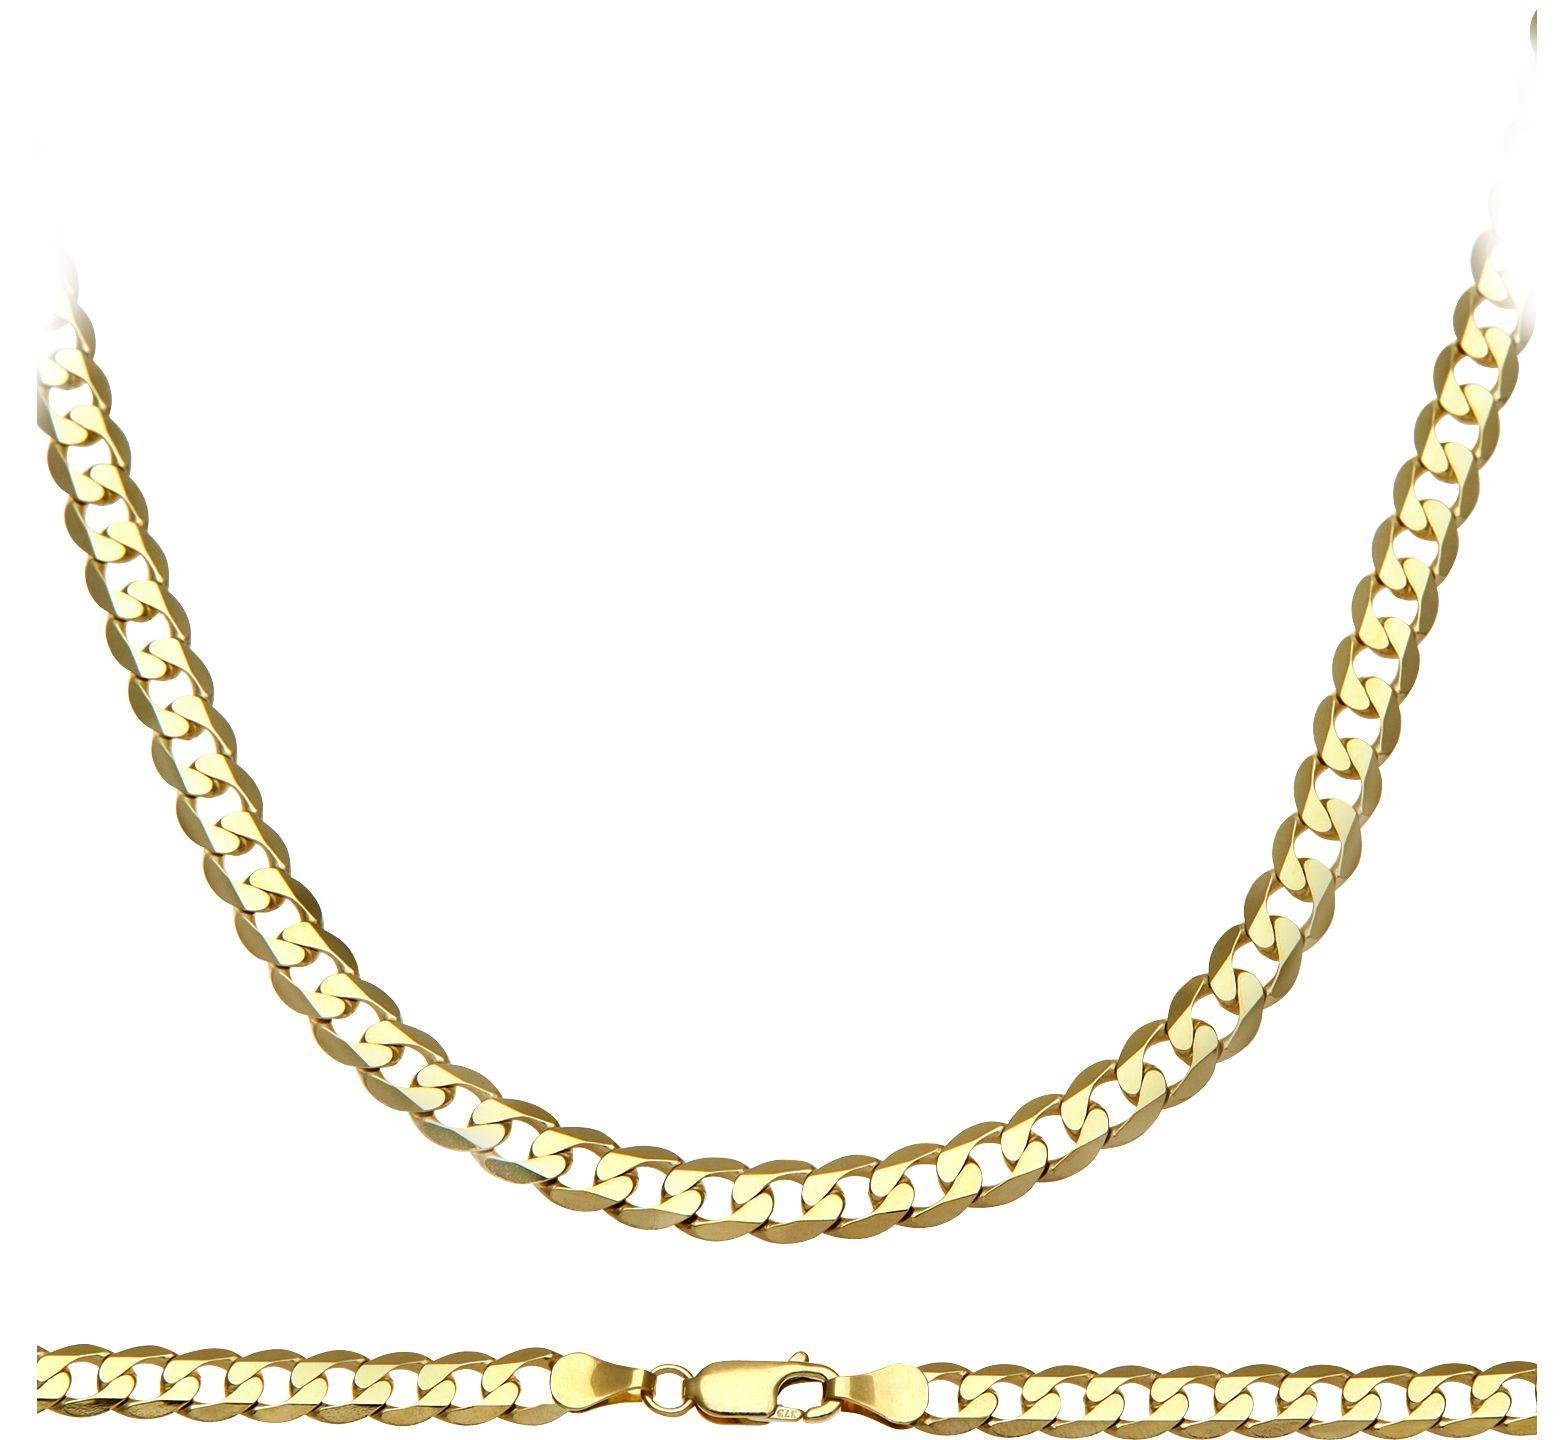 Image of 9ct Gold 24 Inch Solid Curb Chain Necklace